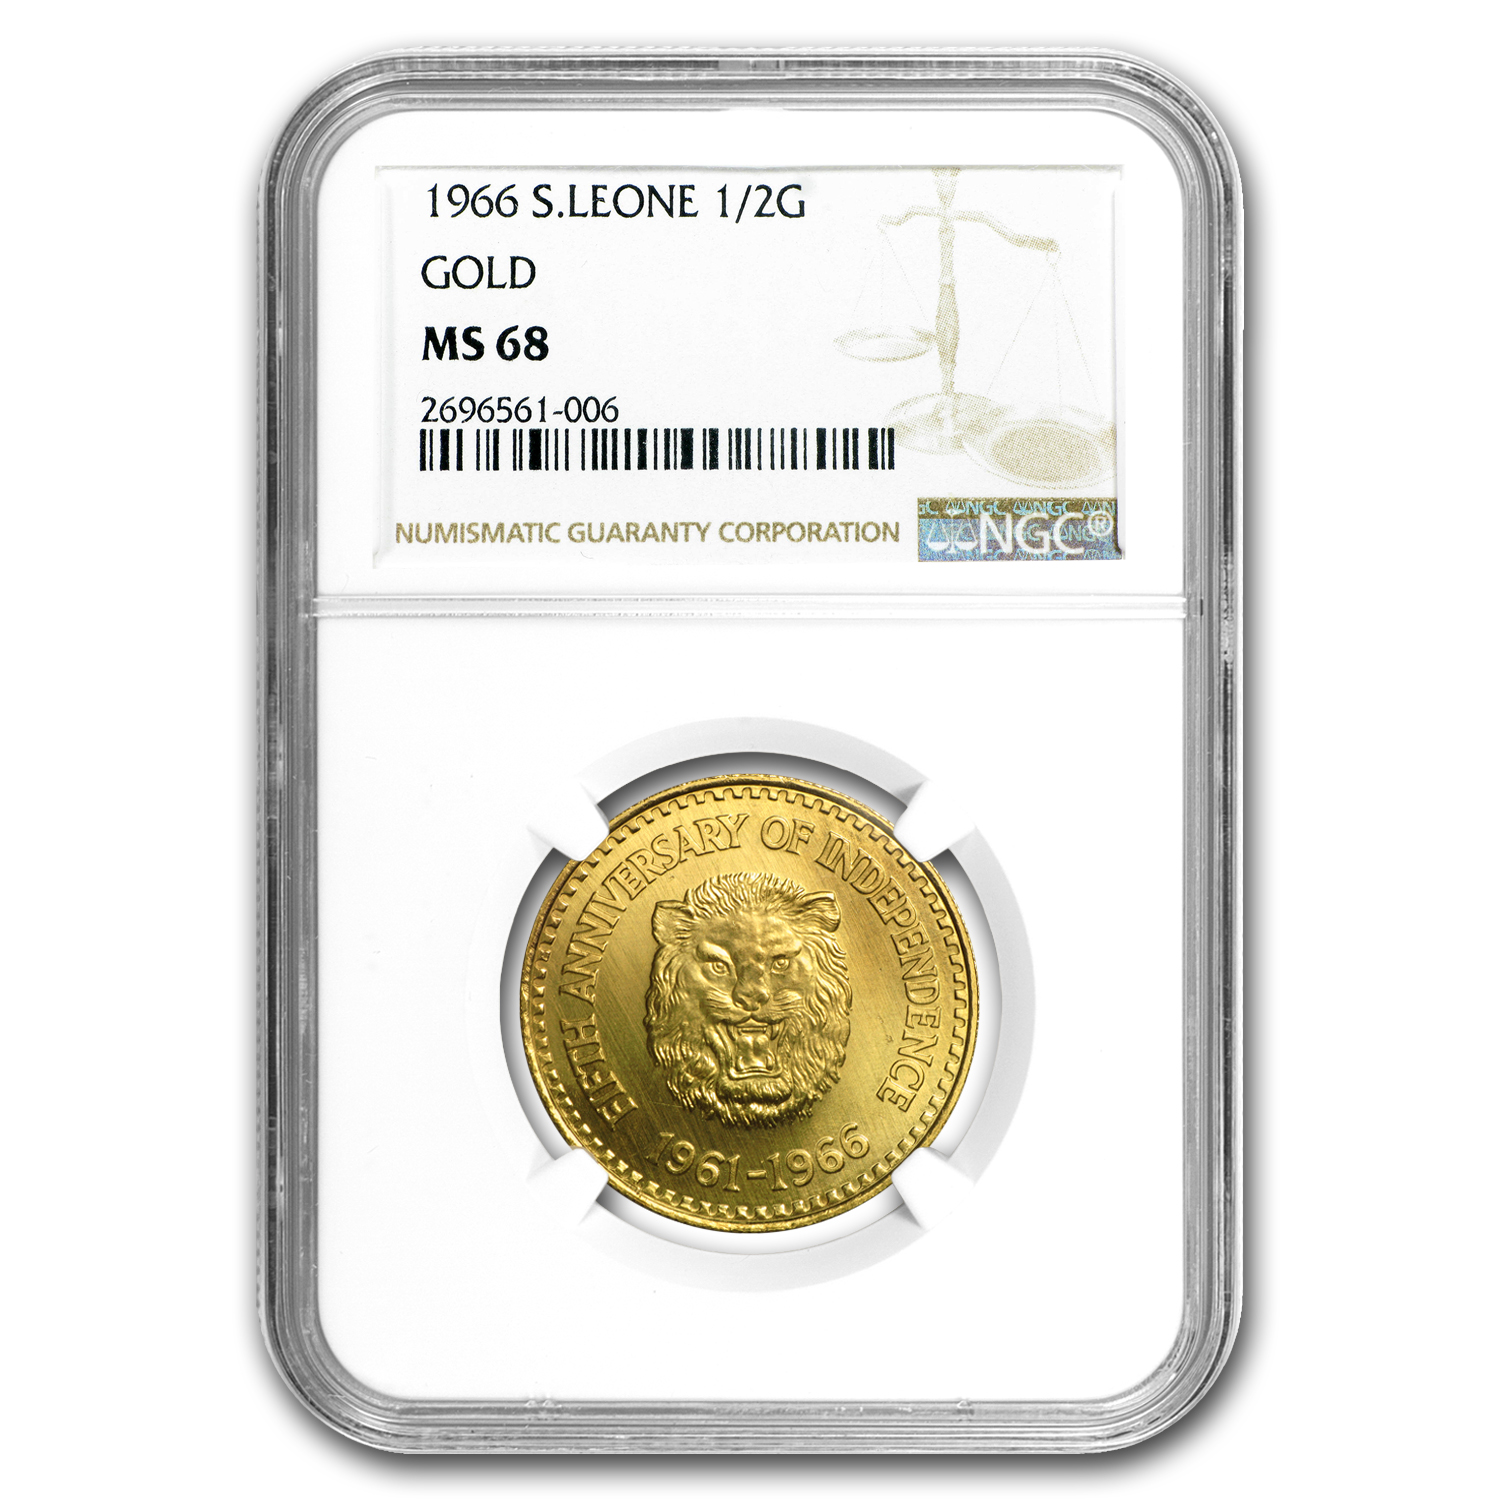 1966 Sierra Leone Gold 1/2 Golde Lion Head MS-68 NGC